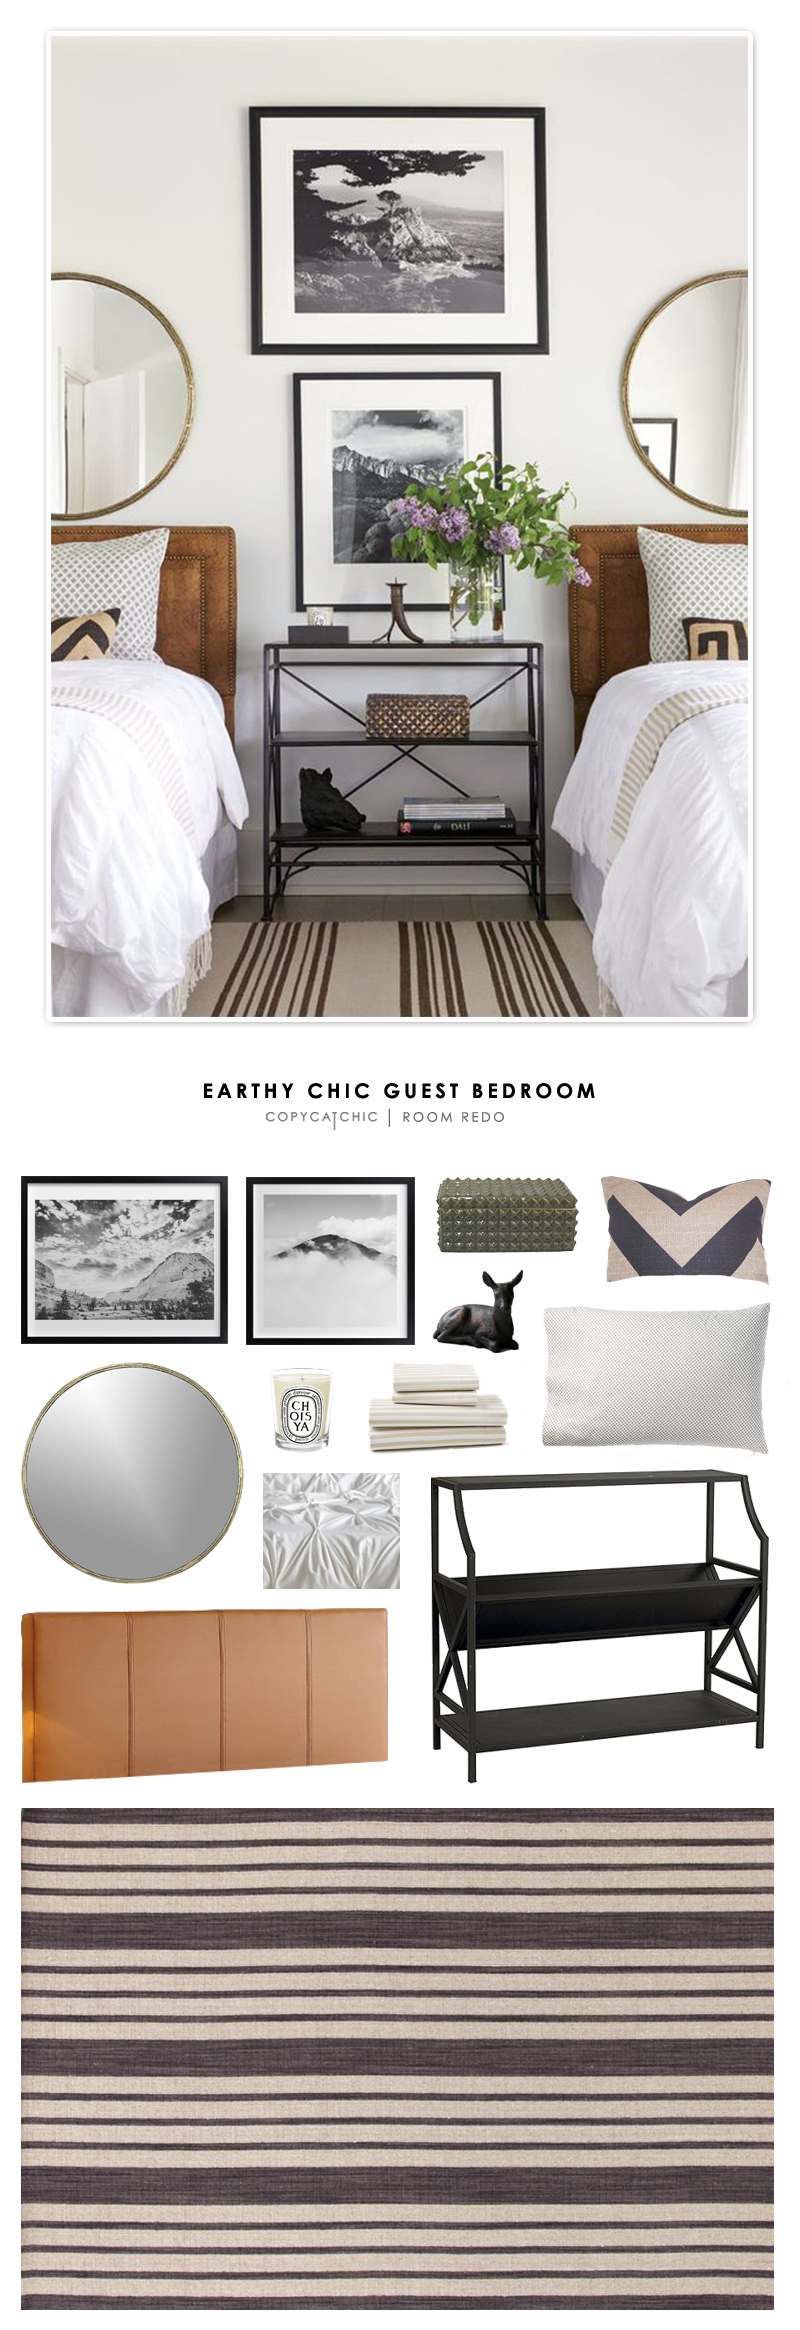 An earthy chic guest bedroom designed by Andrew Brown and recreated for less by Copy Cat Chic.